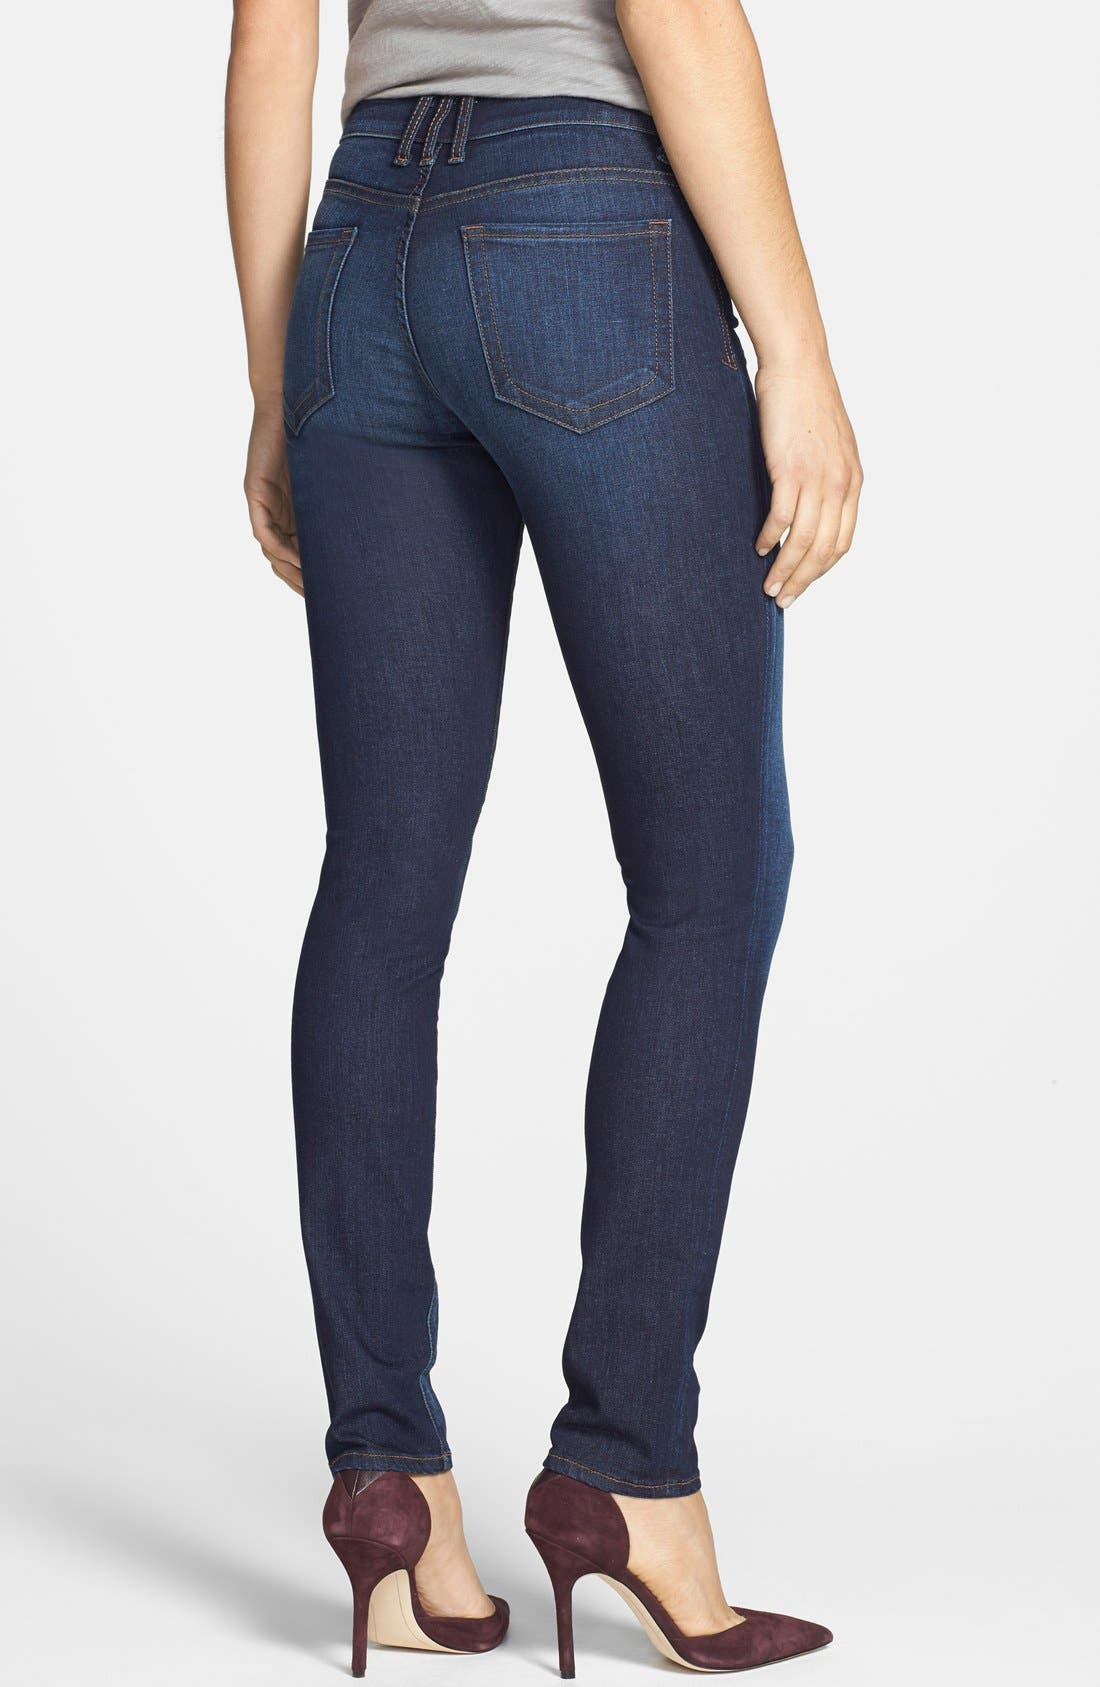 'Diana' Stretch Skinny Jeans,                             Alternate thumbnail 2, color,                             402